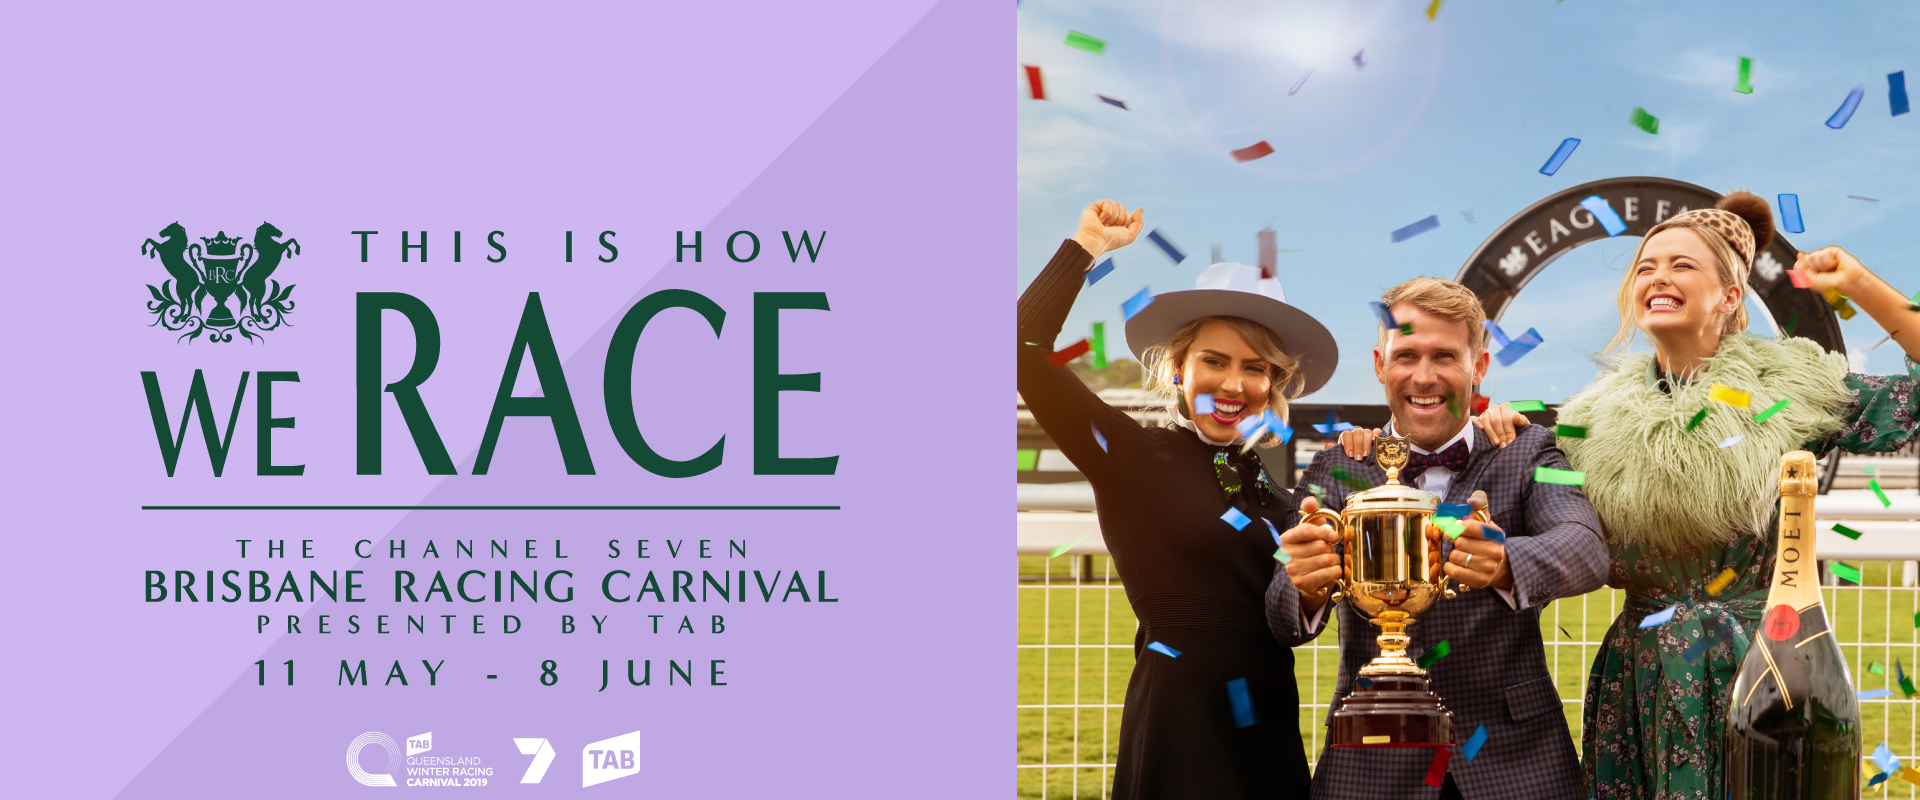 The highly-anticipated Channel Seven Brisbane Racing Carnival, presented by TAB, is fast-approaching and we are thrilled to announce that ticket and ticket packages are now on sale. Don't miss Queensland's biggest sporting and social event featuring world class racing, pop up bars, live entertainment, food truck, pop-up bars, celebrities, fashion and more | Brisbane Racing Club